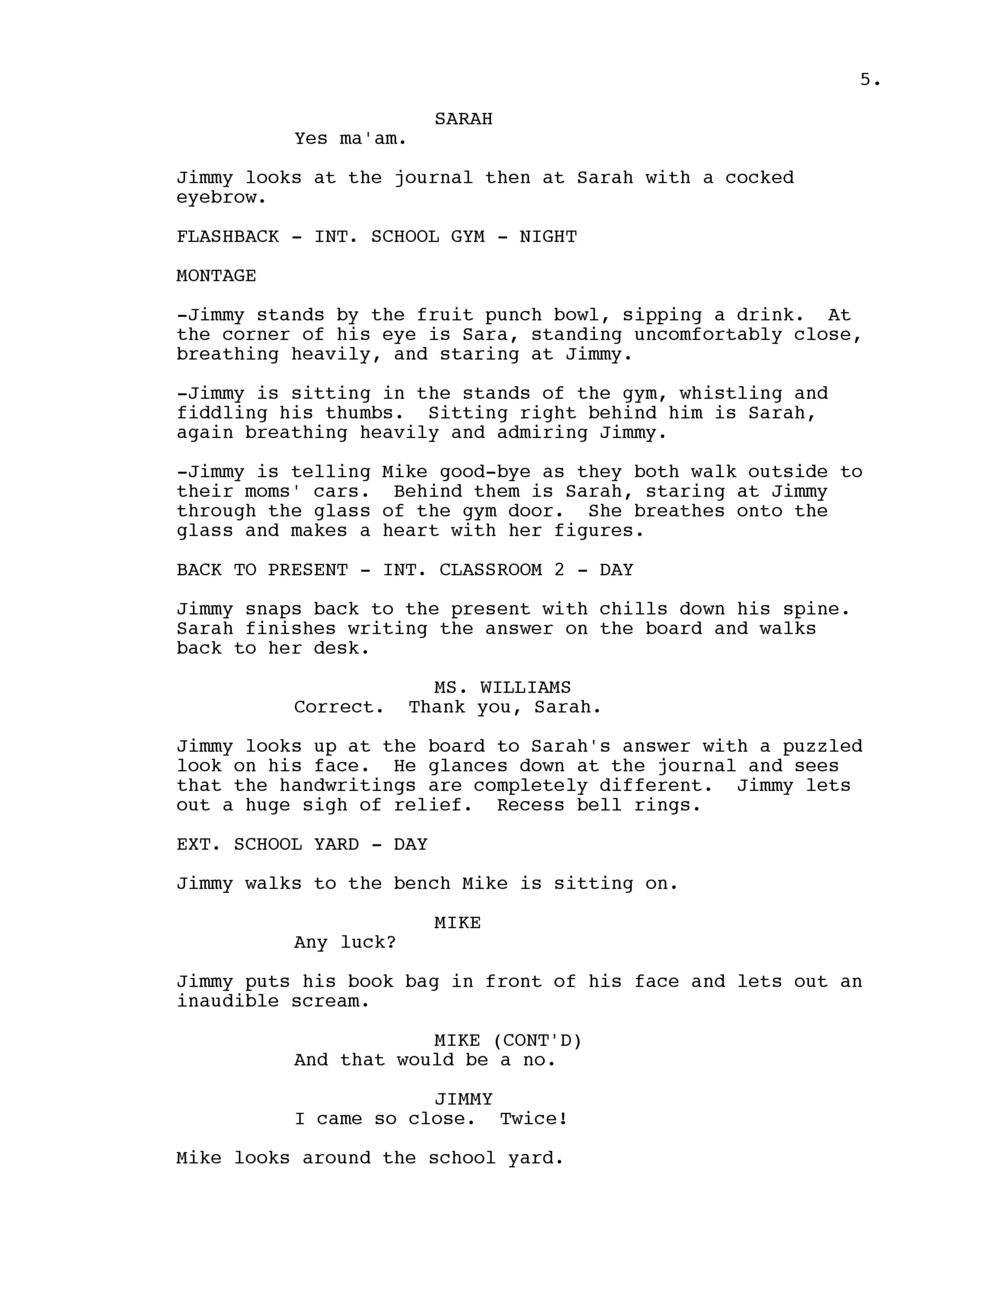 Script - The Pink Journal-5.jpg